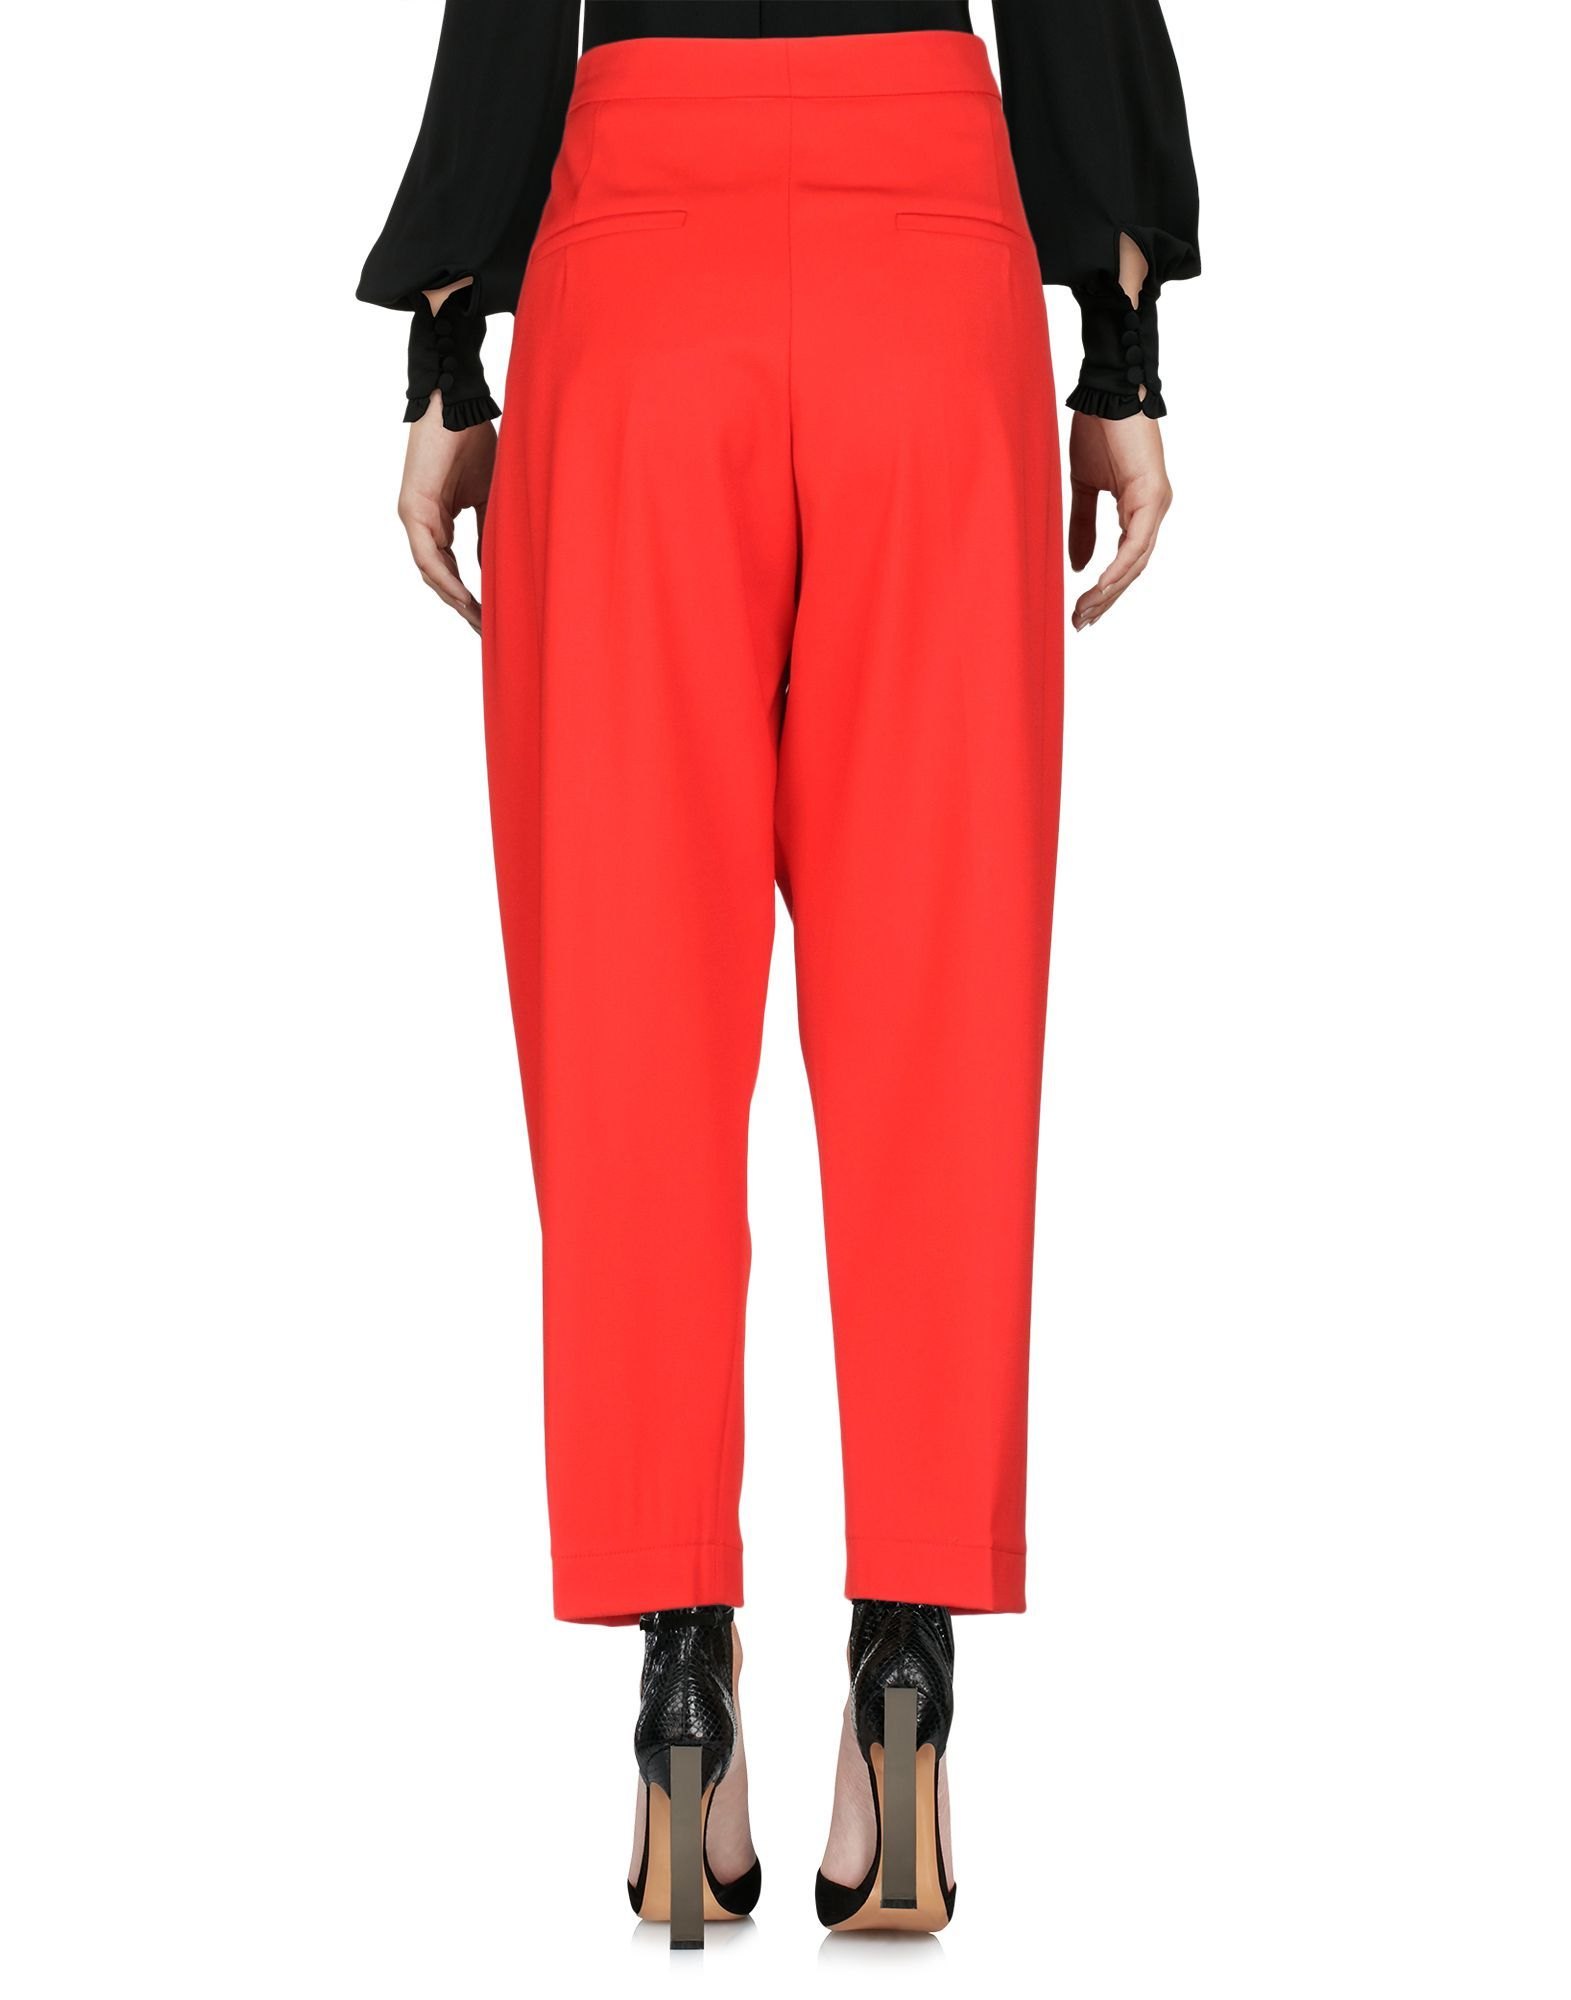 Marni Red Cotton Cropped Wide Leg Trousers